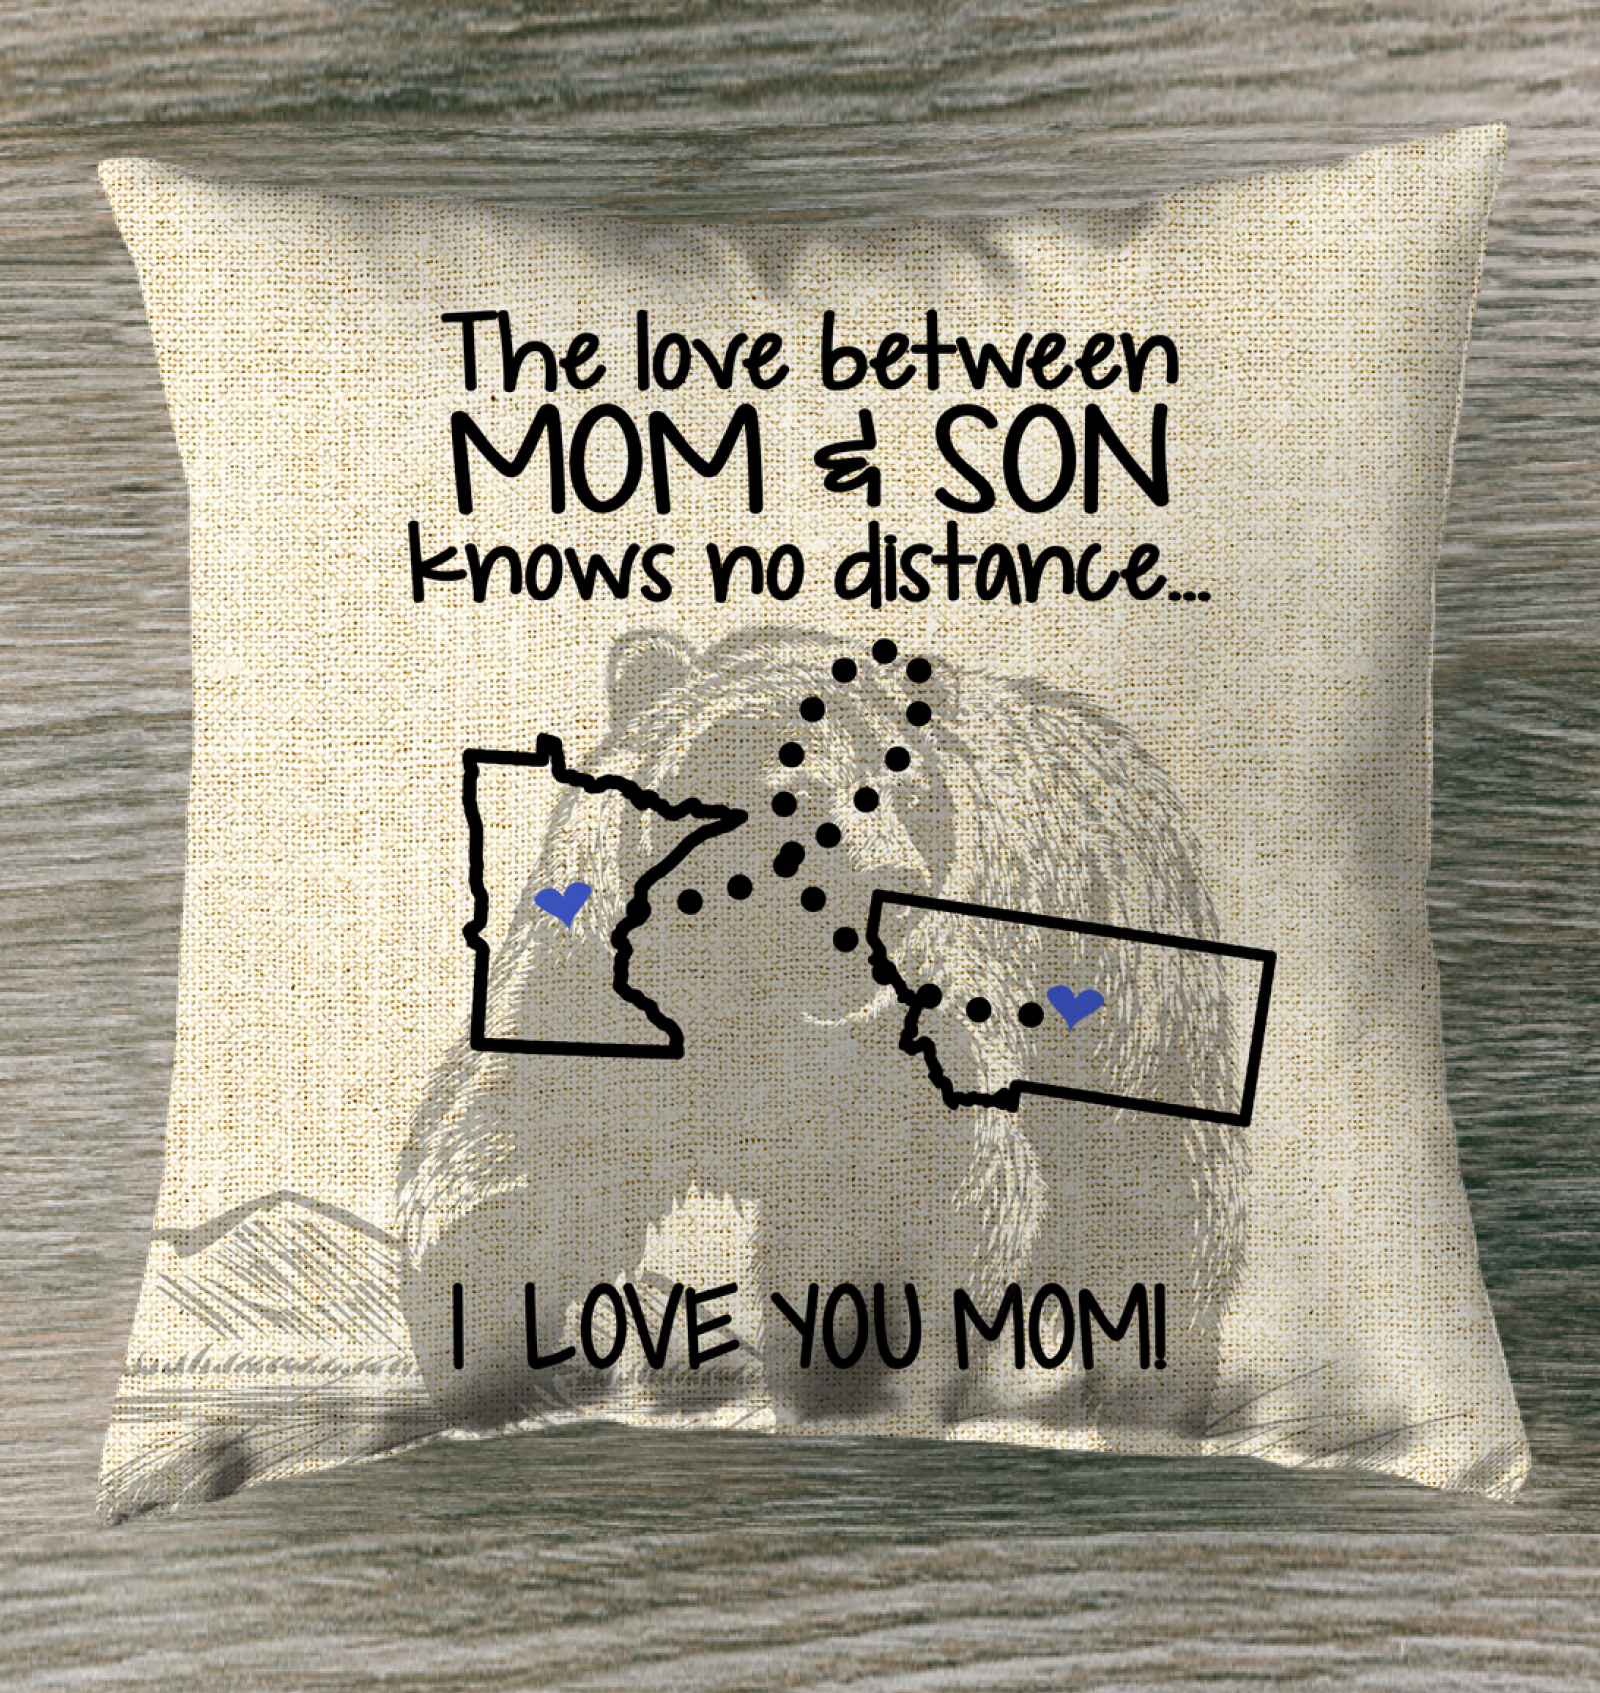 MONTANA MINNESOTA THE LOVE MOM AND SON KNOWS NO DISTANCE